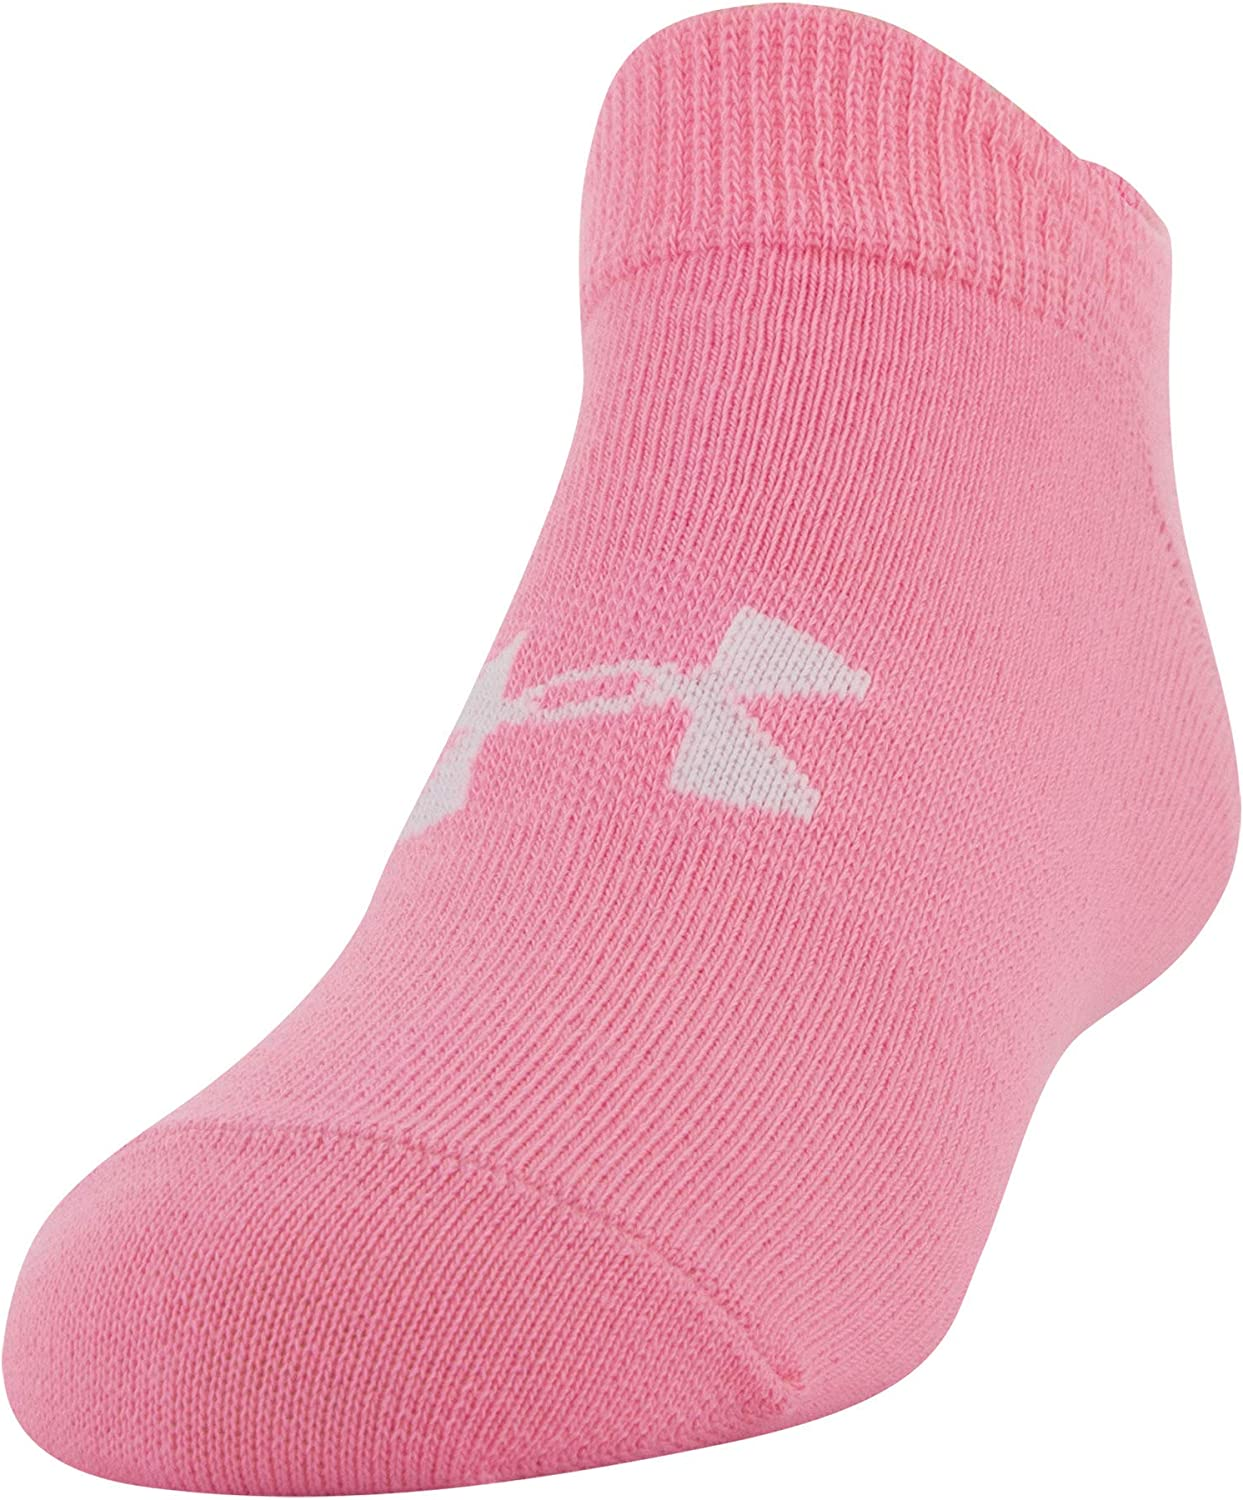 Under Armour Youth Essential 2.0 No Show Socks, 6-Pairs , Mojo Pink Assorted , Shoe Size: Youth 13.5K-4Y: Clothing